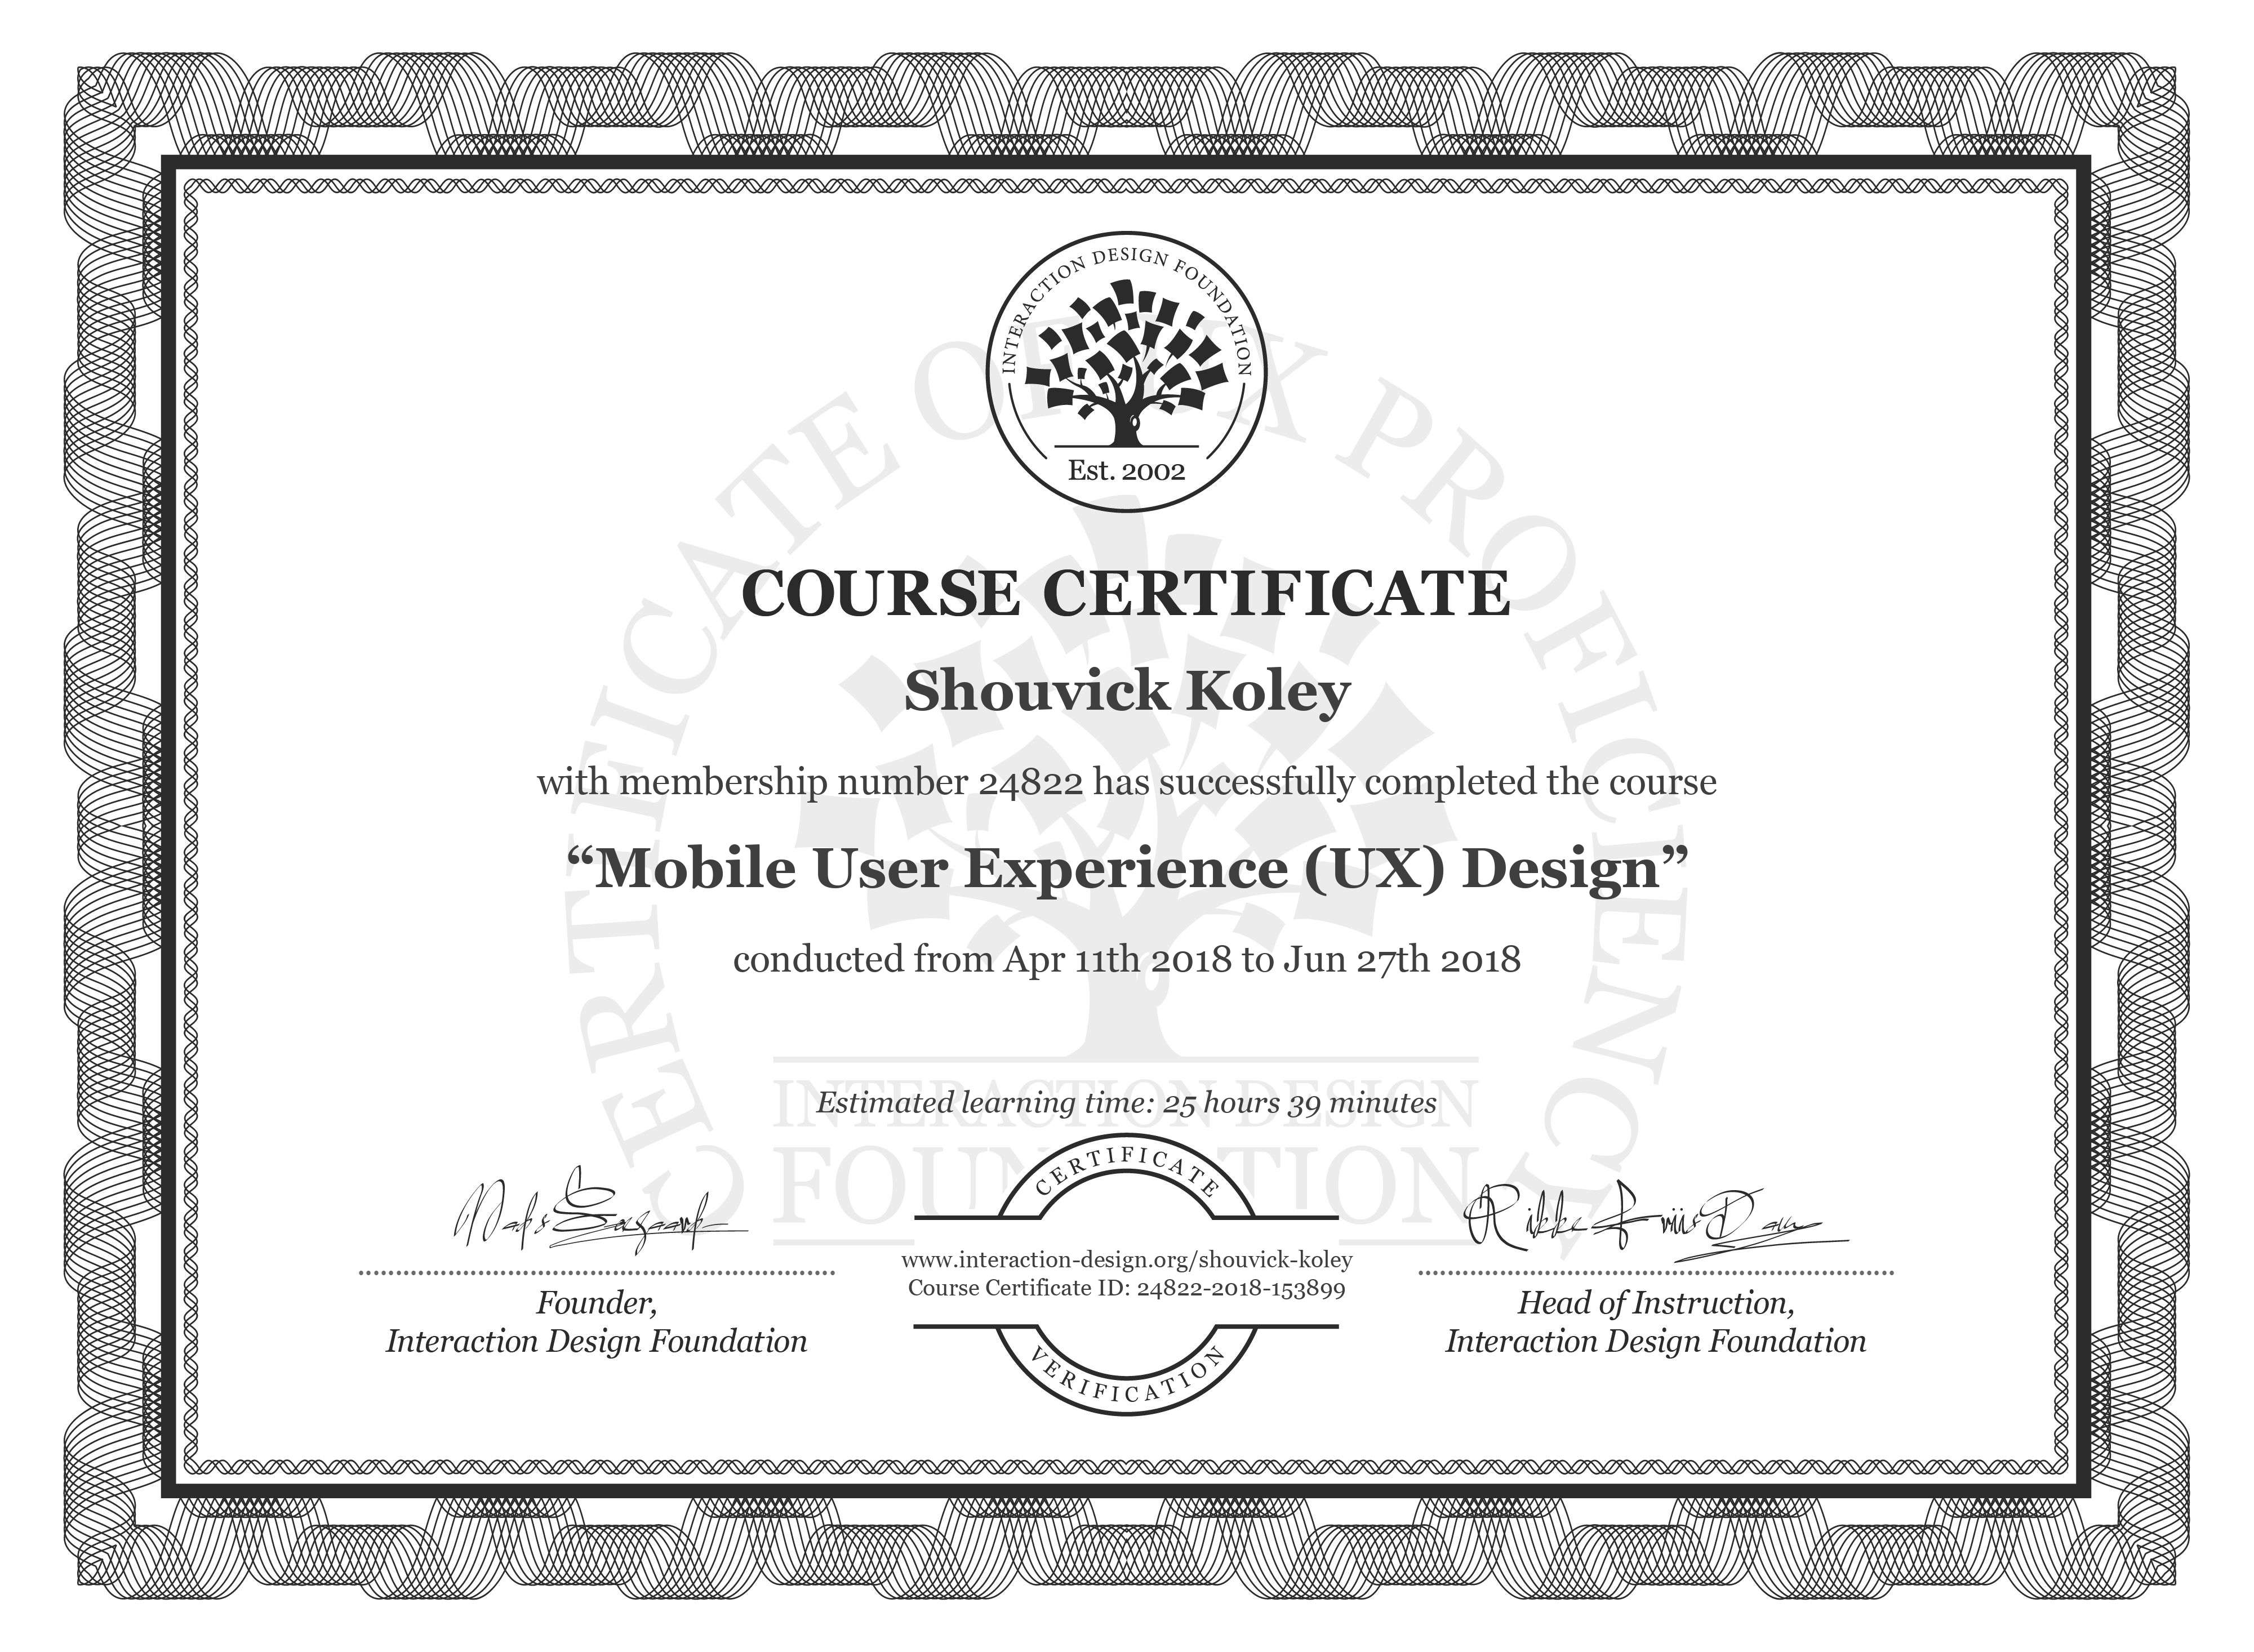 Shouvick Koley: Course Certificate - Mobile User Experience (UX) Design